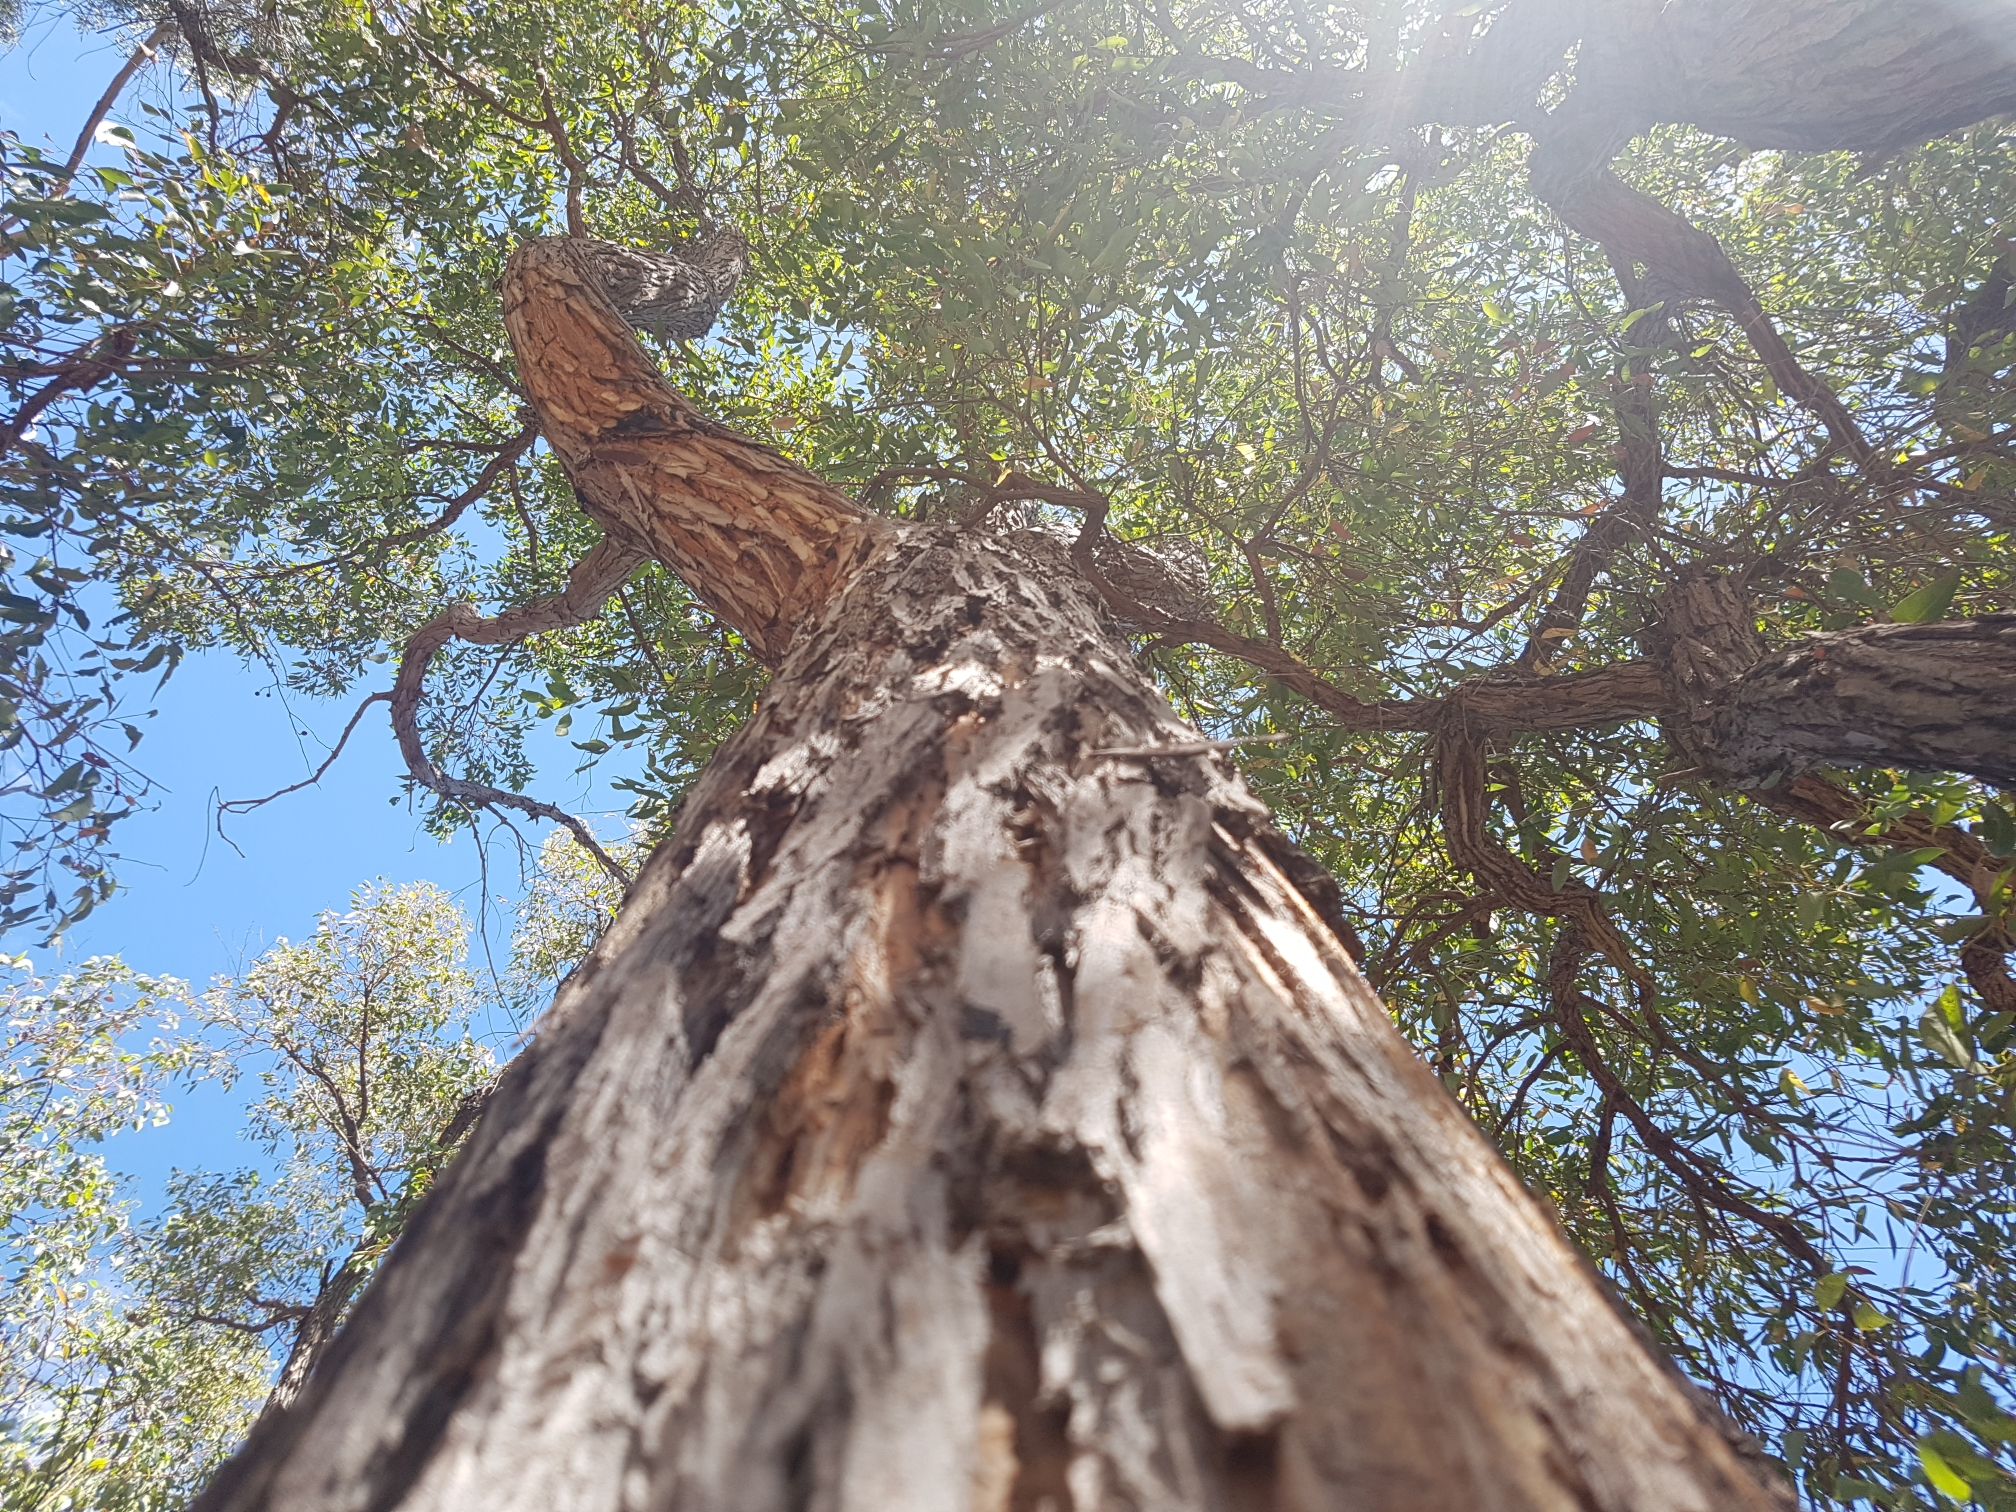 Best Eucalypt Sighting Winnr: EntropyAndRoar sent in this lovely sighting of an Jarrah, ( Eucalyptus marginata ). This species is iconic to south-western Western Australia and has been heavily harvested for timber.